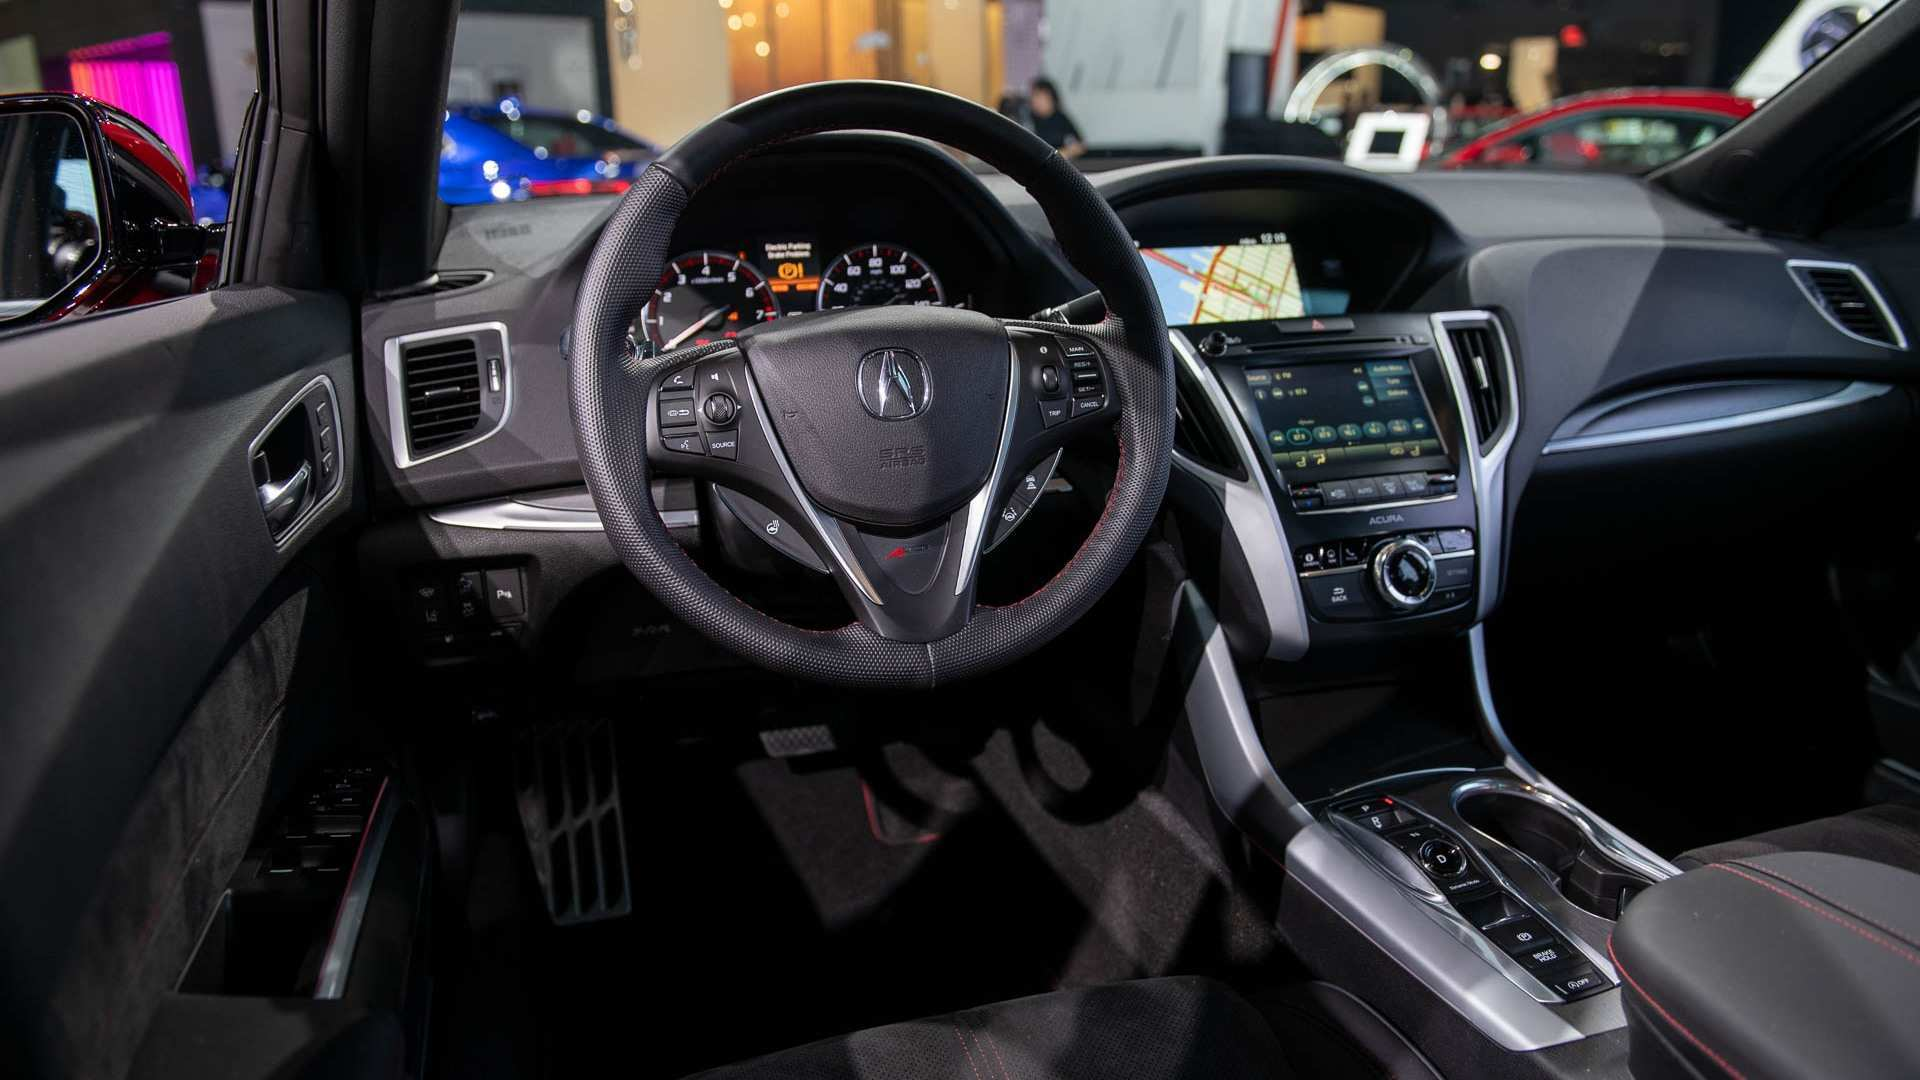 11 Gallery of Acura Tlx 2020 Interior Pictures with Acura Tlx 2020 Interior